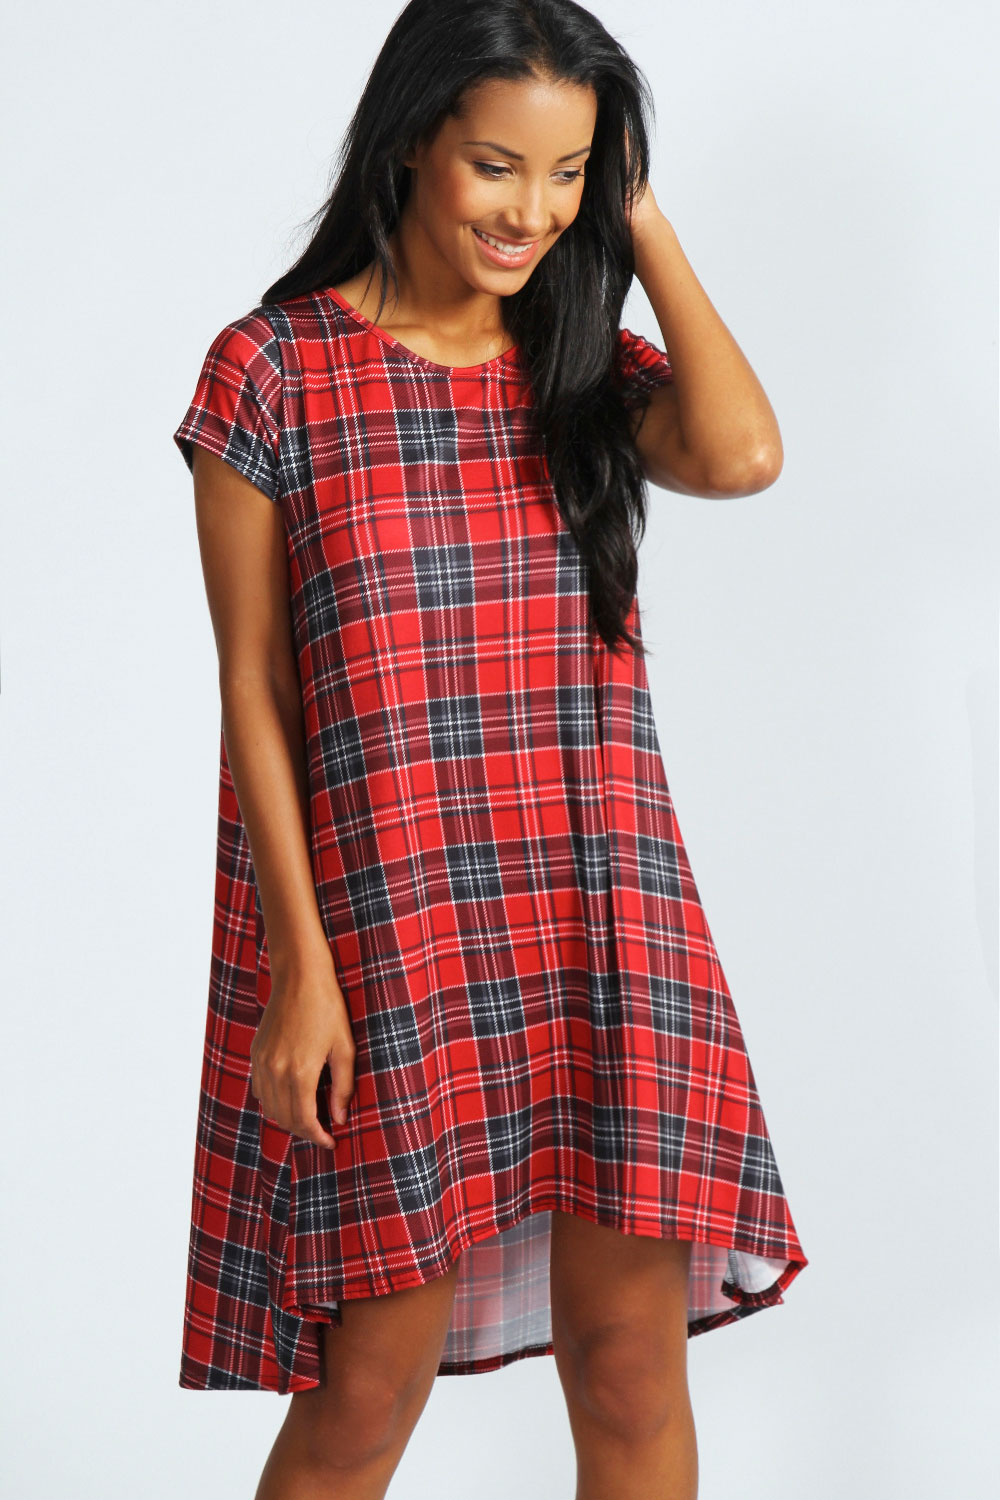 Plaid Christmas dresses are a holiday classic and our festive tartan dress for women will make spirits bright in pure cotton with button bestyload7od.cf: $